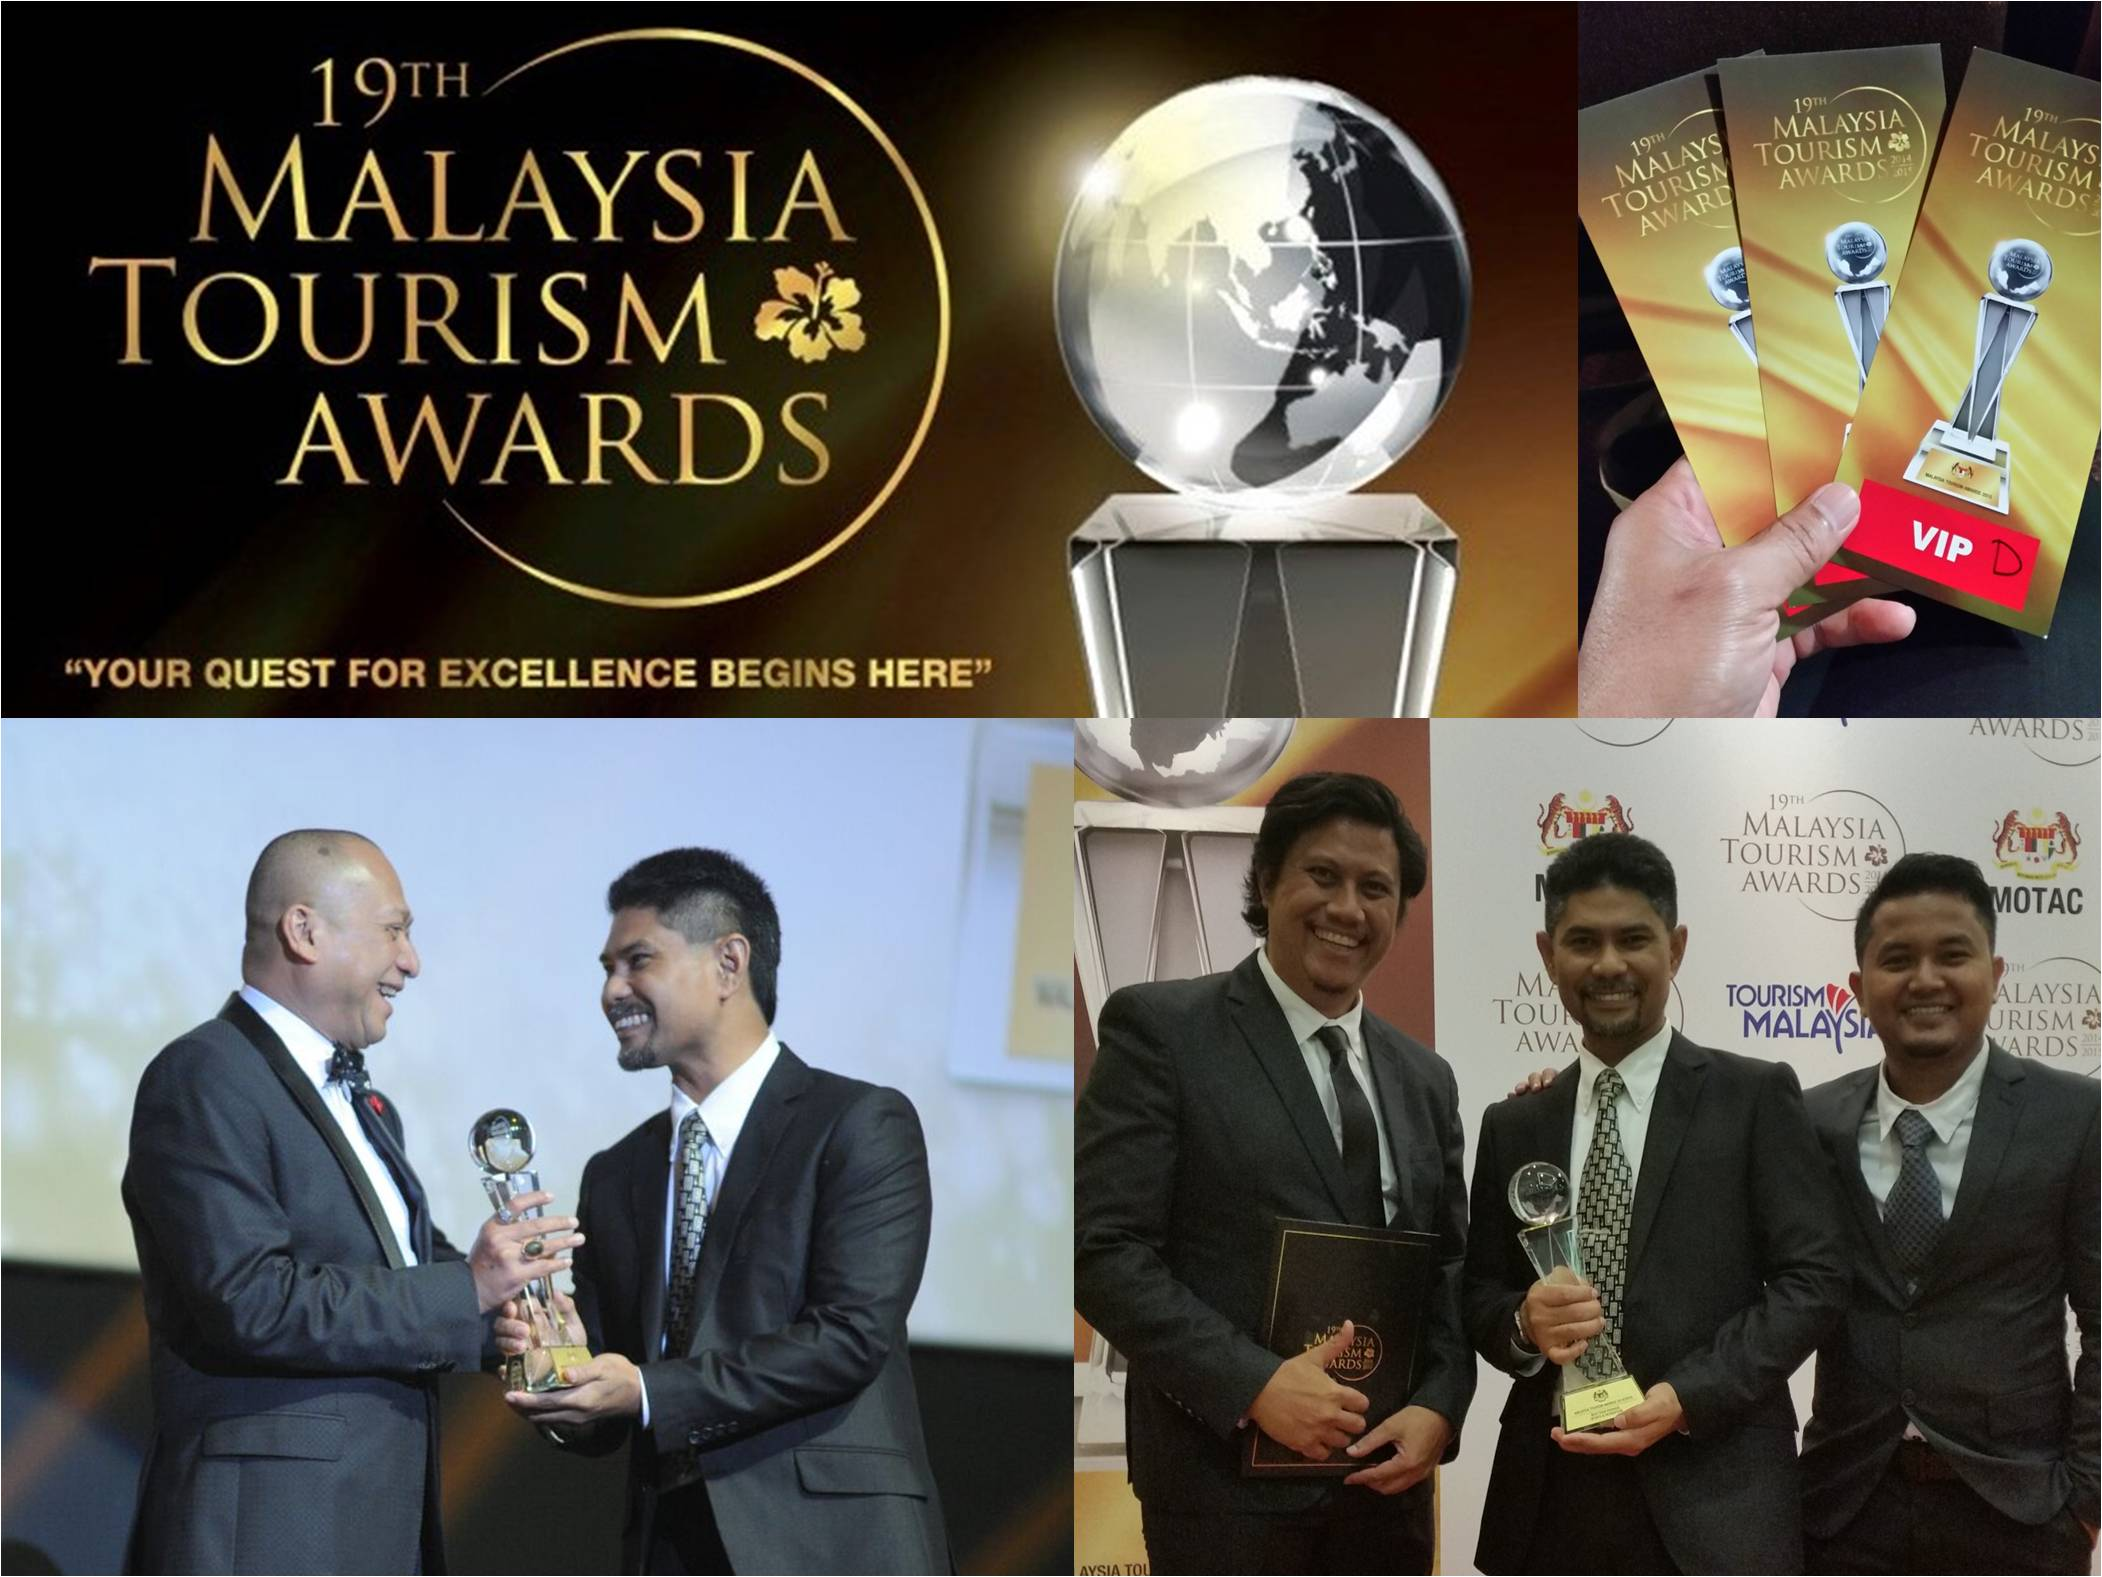 The prestigous 19th Malaysia Tourism Award event